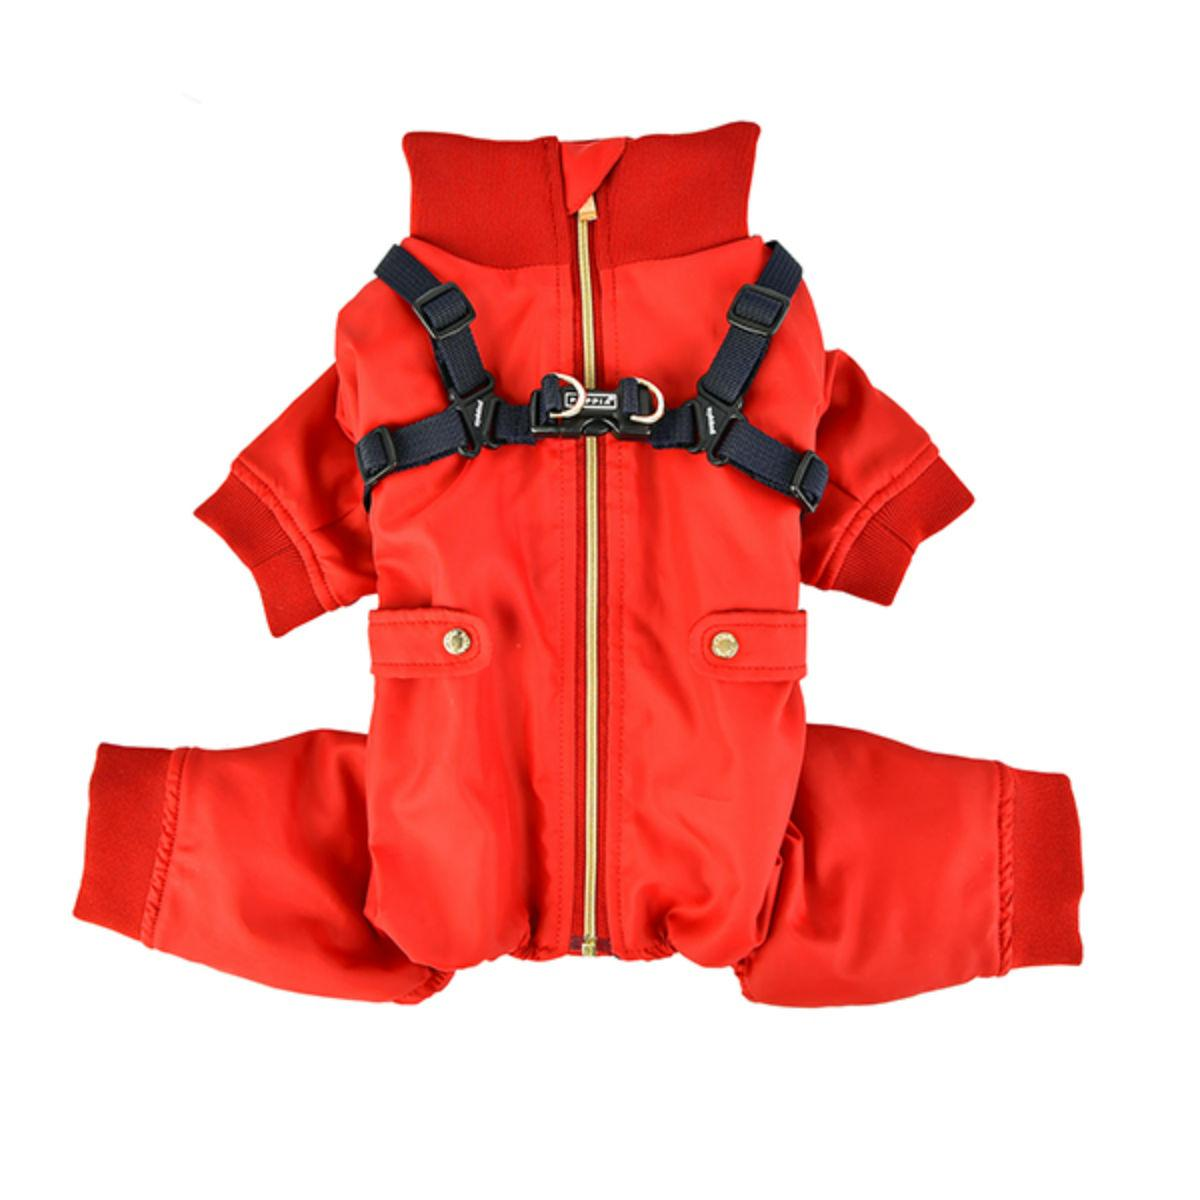 Garnet Winter Jumpsuit with Integrated Dog Harness by Puppia Life - Red